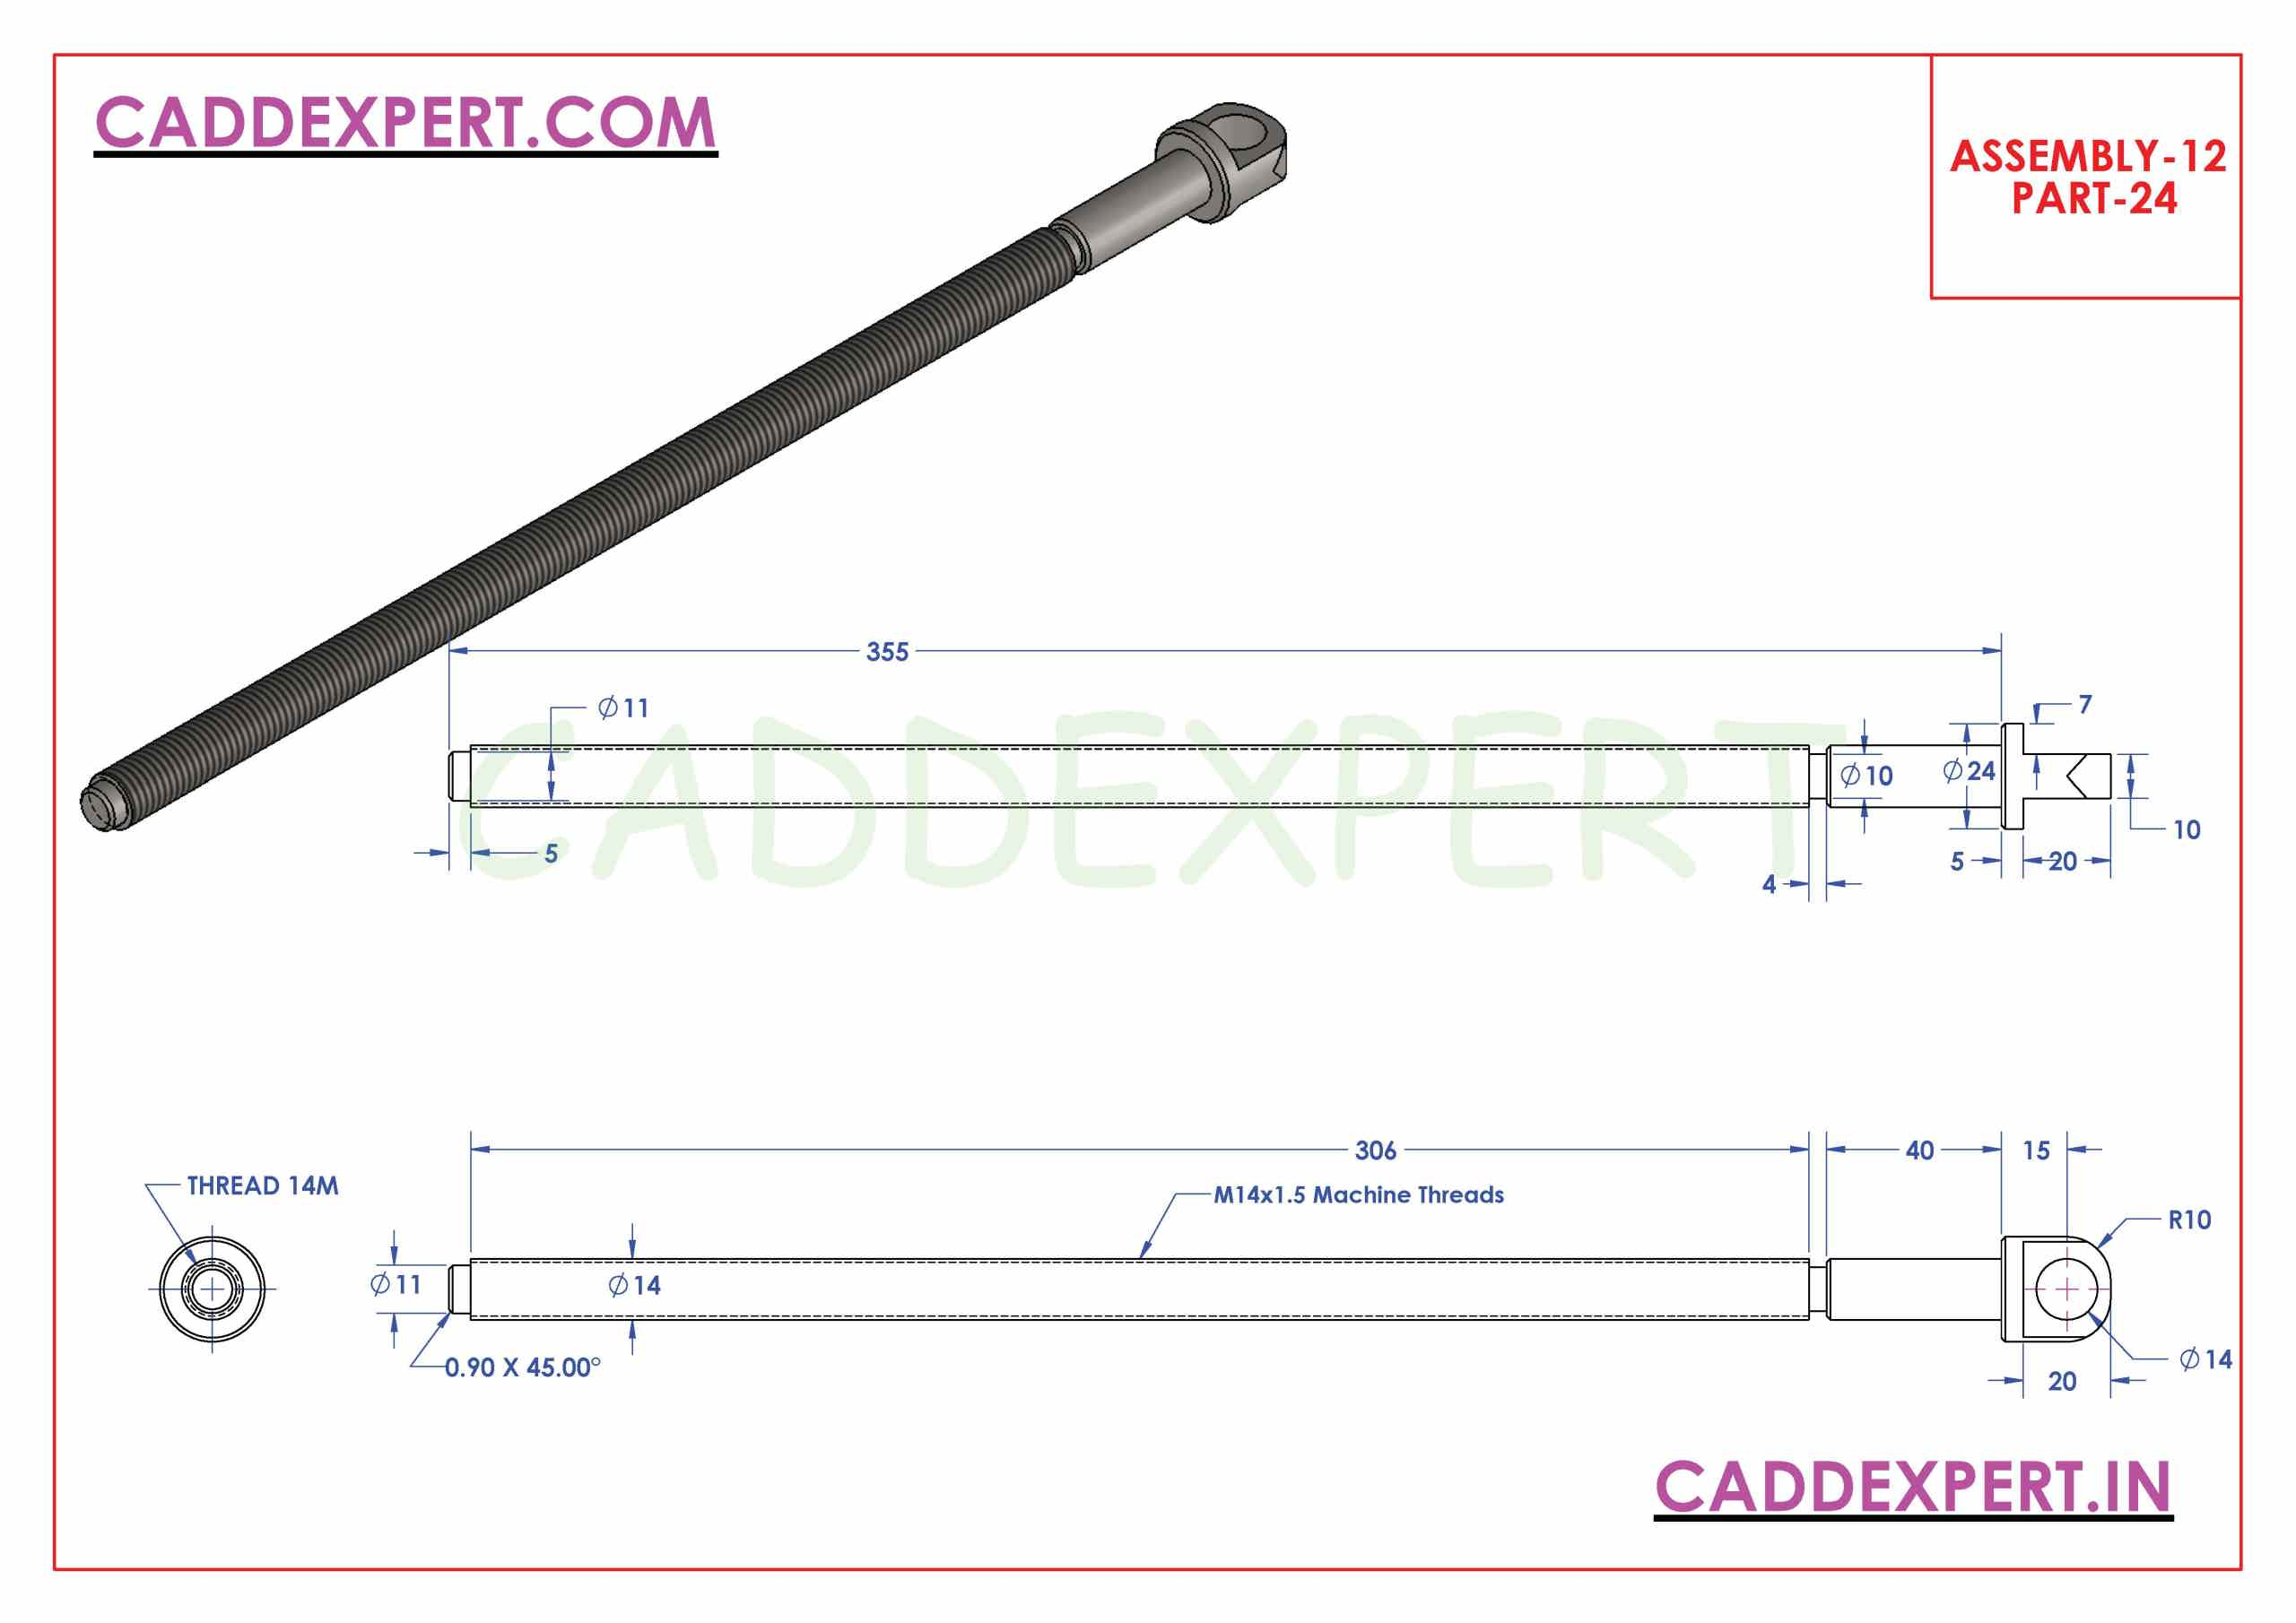 SOLIDWORKS ASSEMBLY JACK SCREW PART - 24